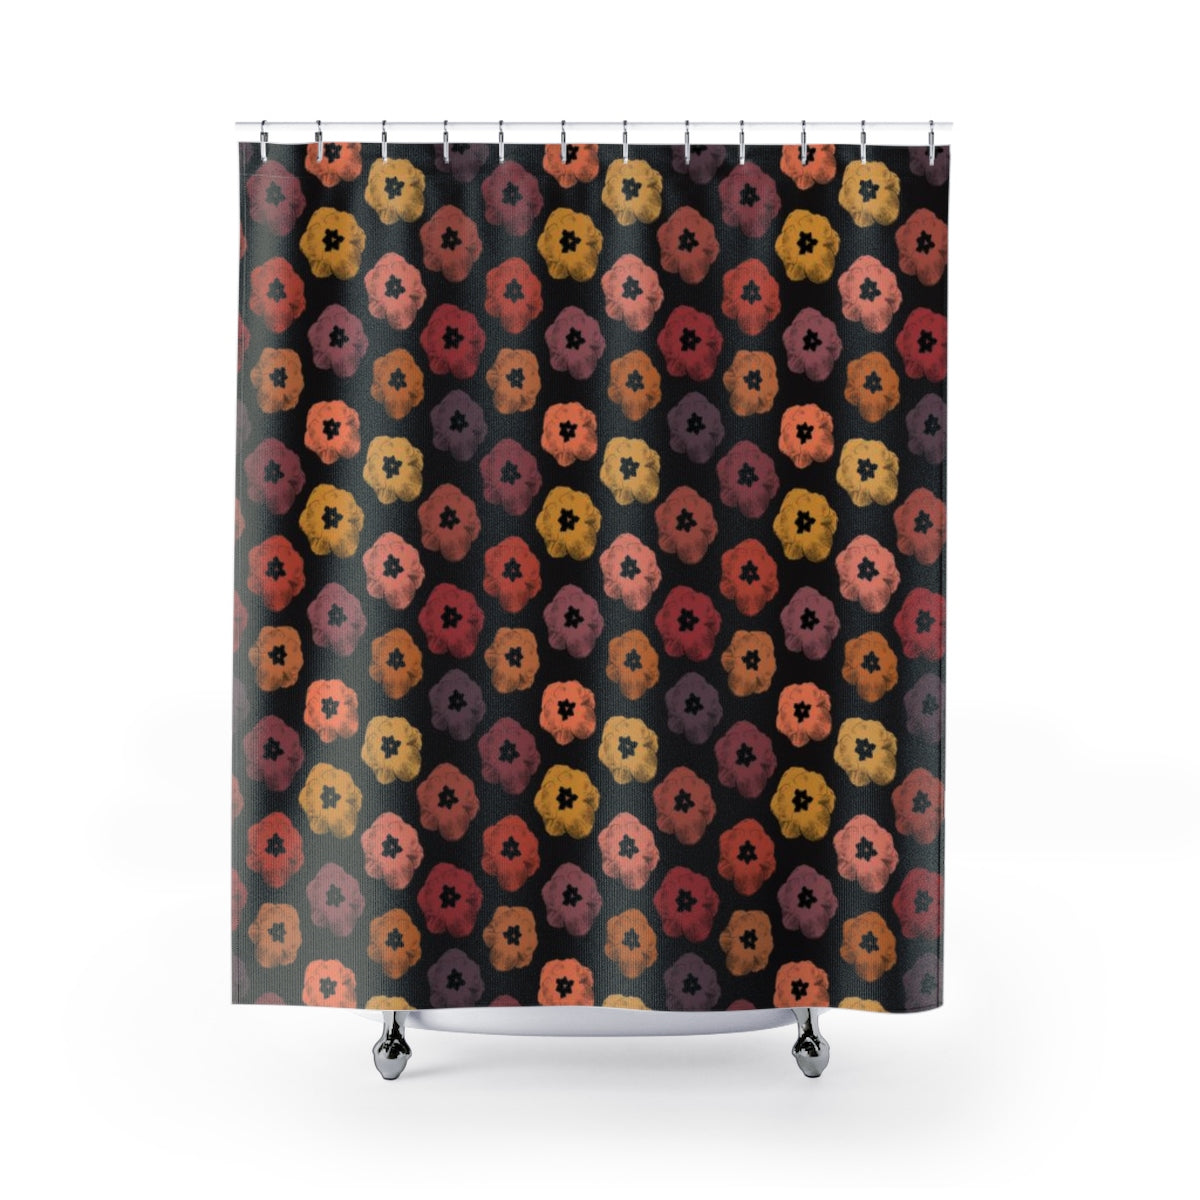 Floral Earth Tones: Poster-Style Tulips in Warm Shades of Orange and Red on Black Shower Curtain - Metro Shower Curtains